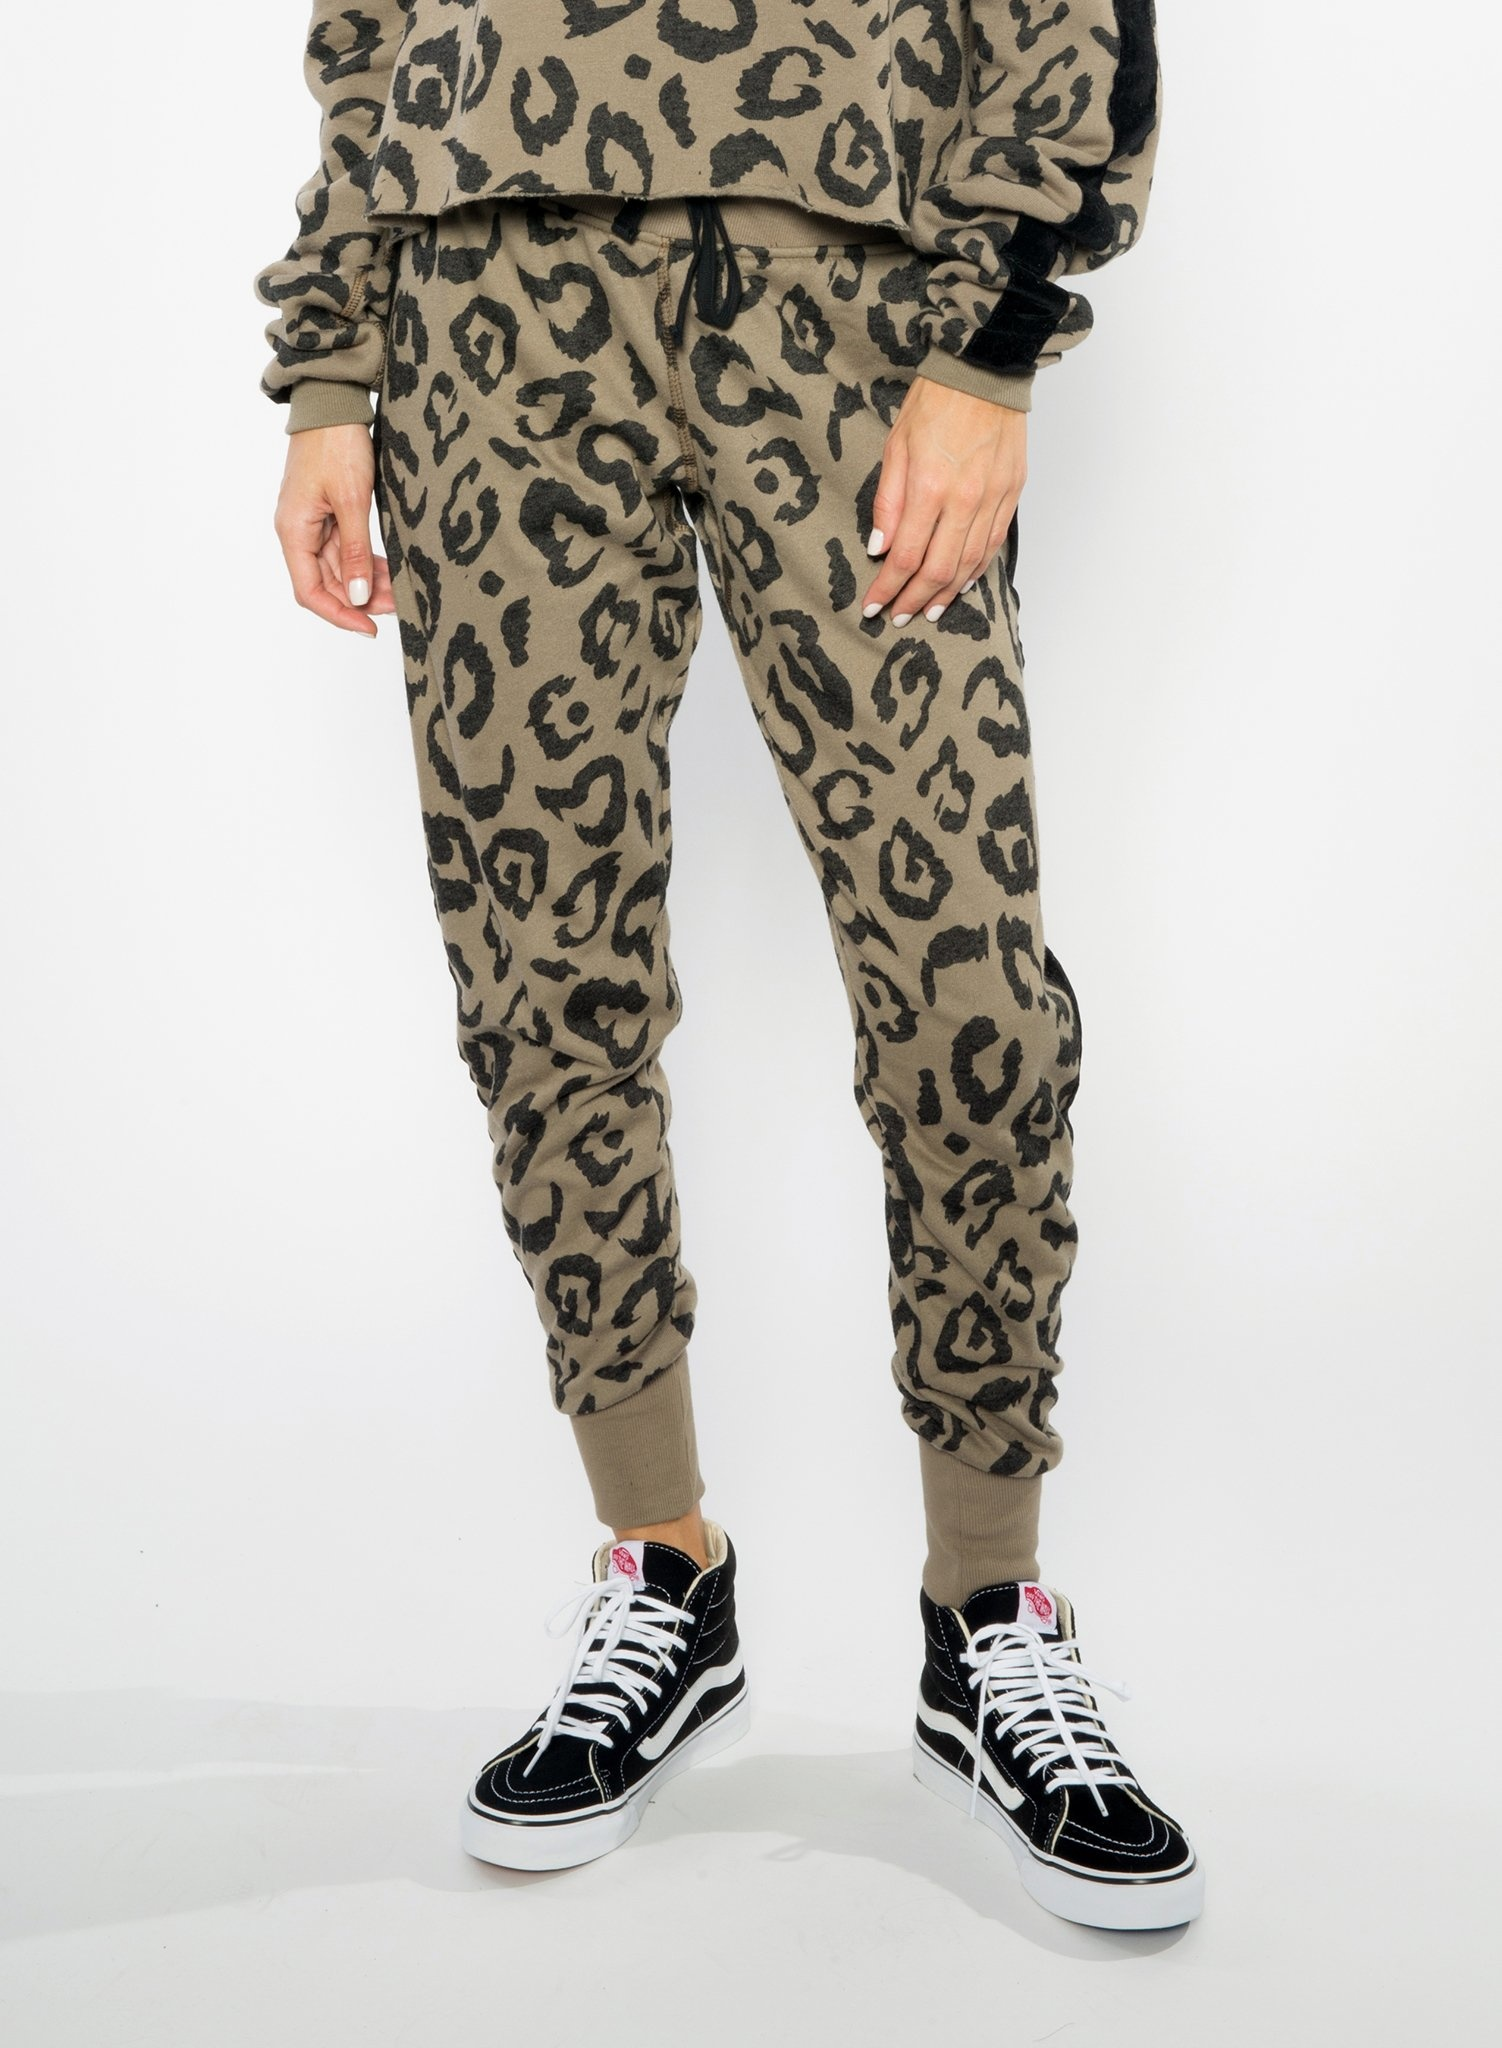 CHRLDR BIG LEOPARD — Tuxedo Stripe Sweatpants